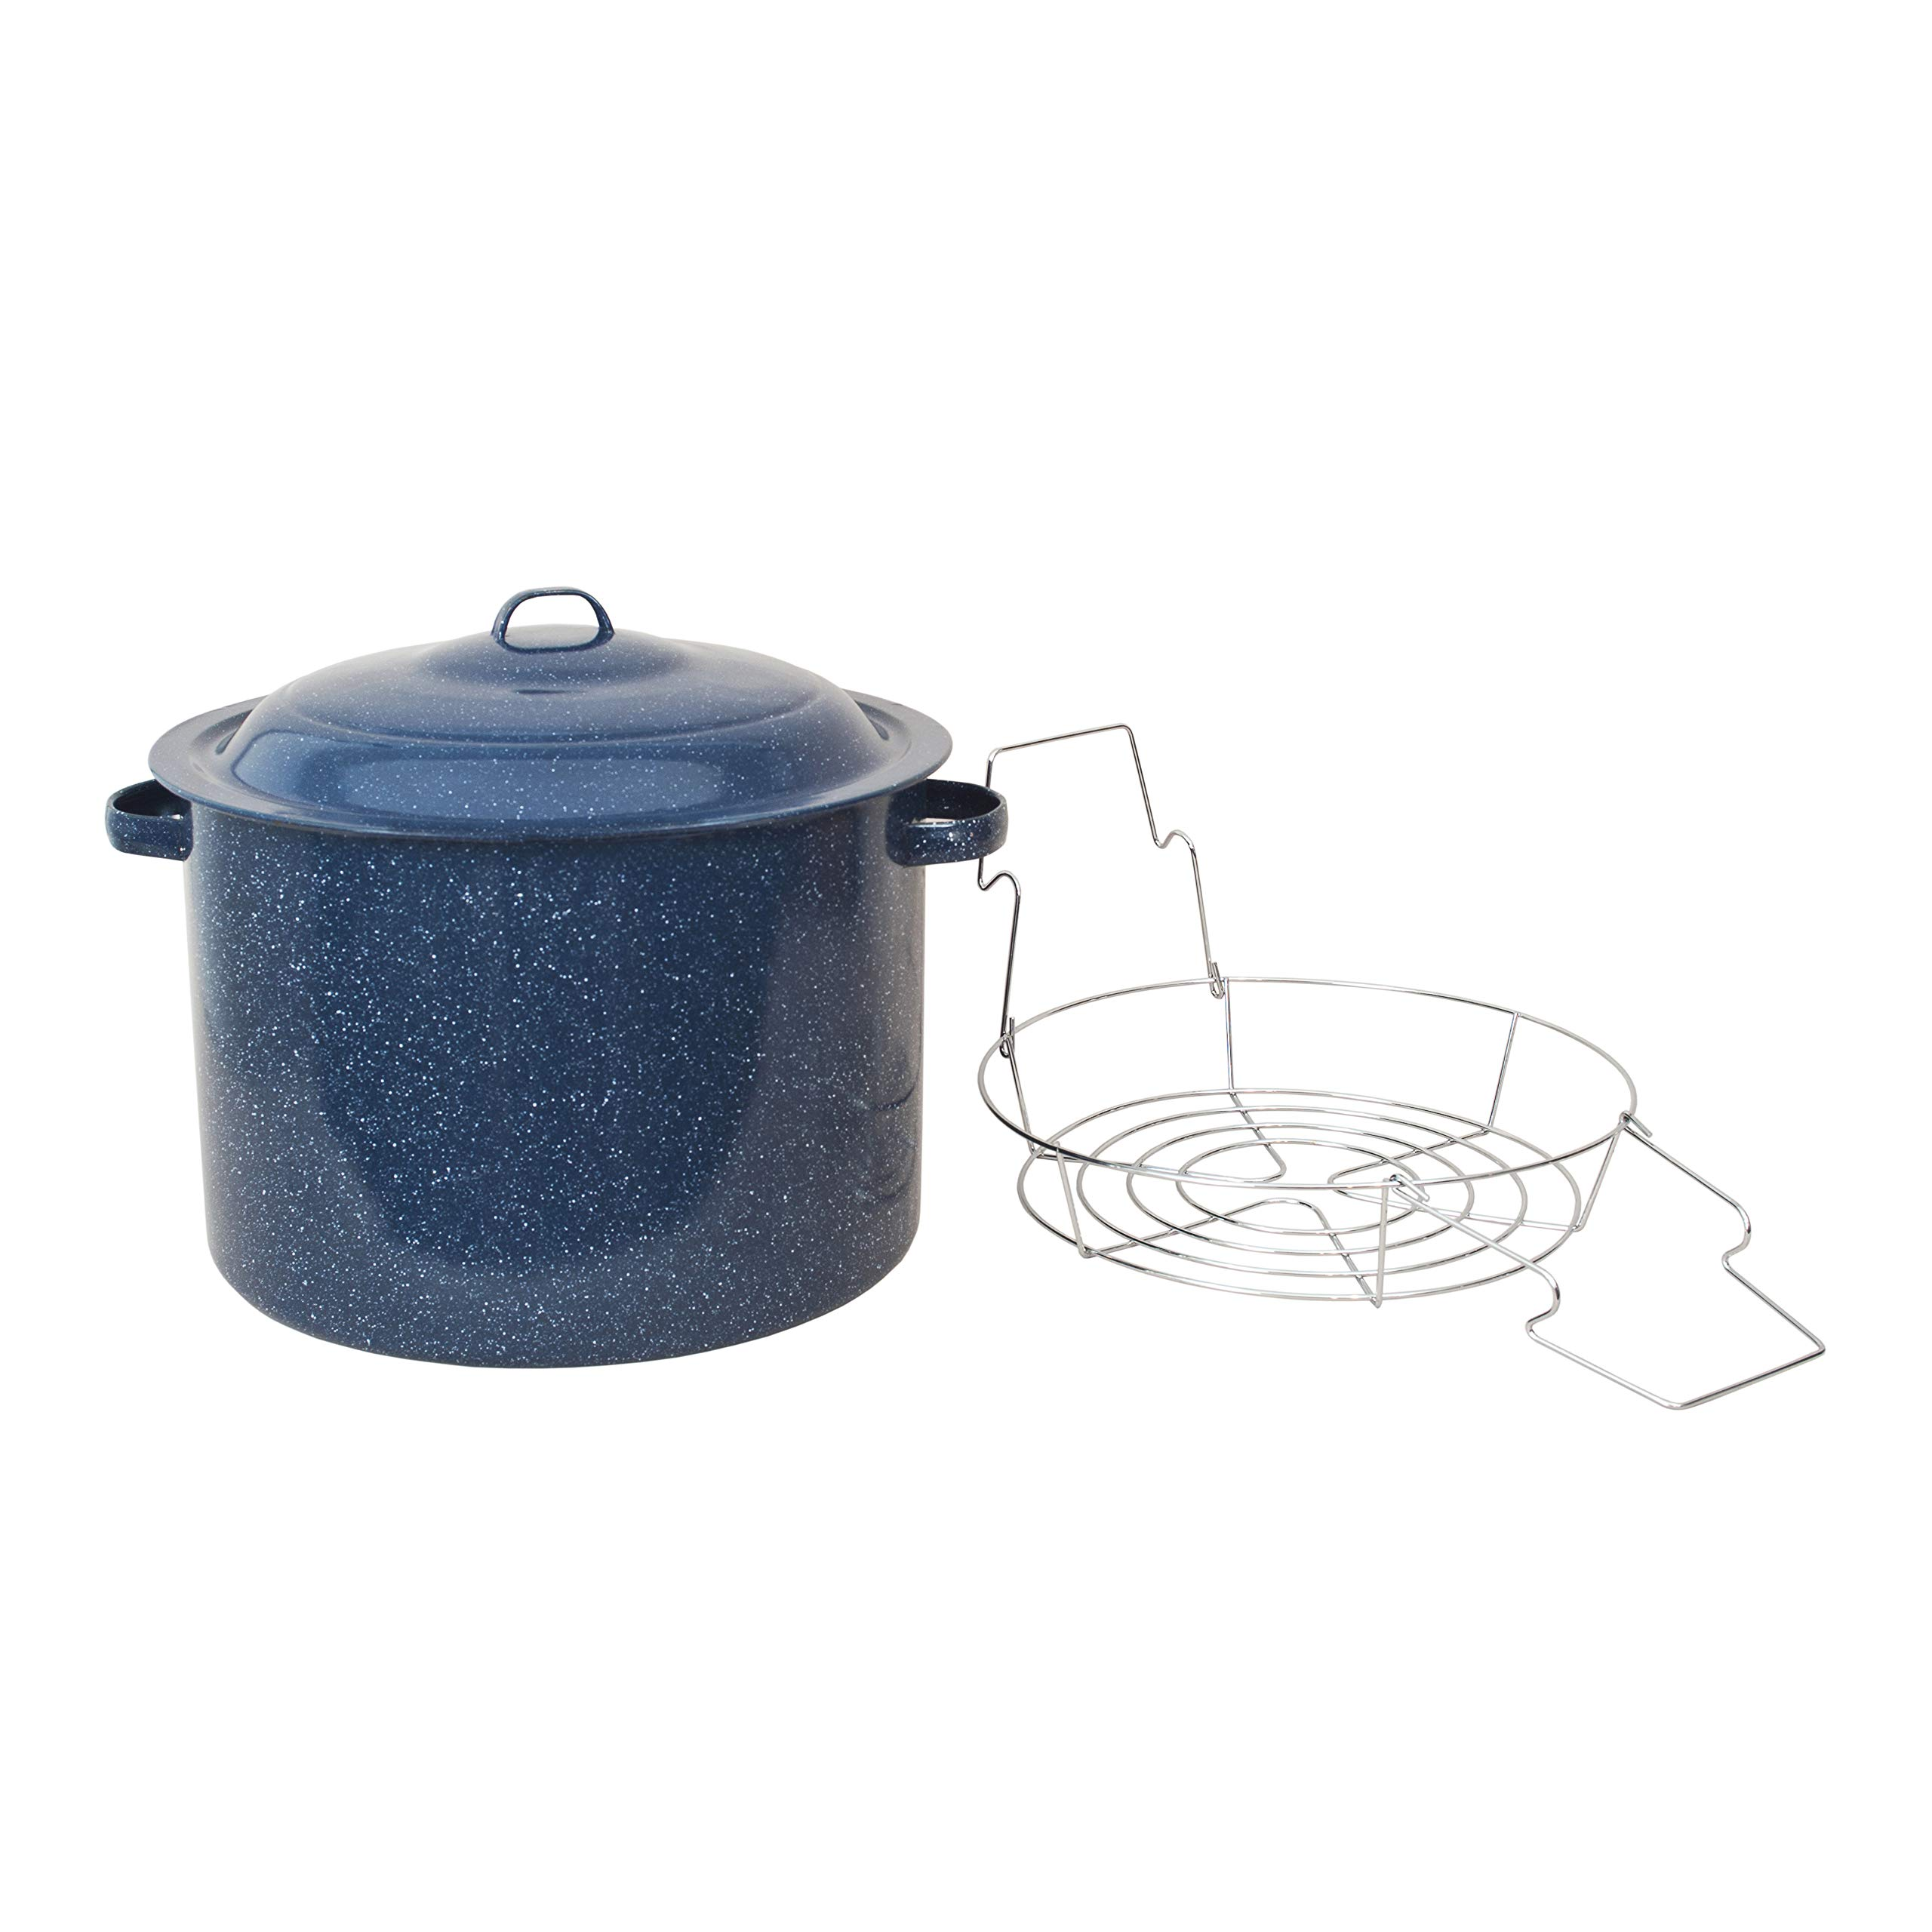 Granite Ware High Capacity Enamel on Steel Water Bath Canner with Chrome Jar Rack, Blue by Granite Ware